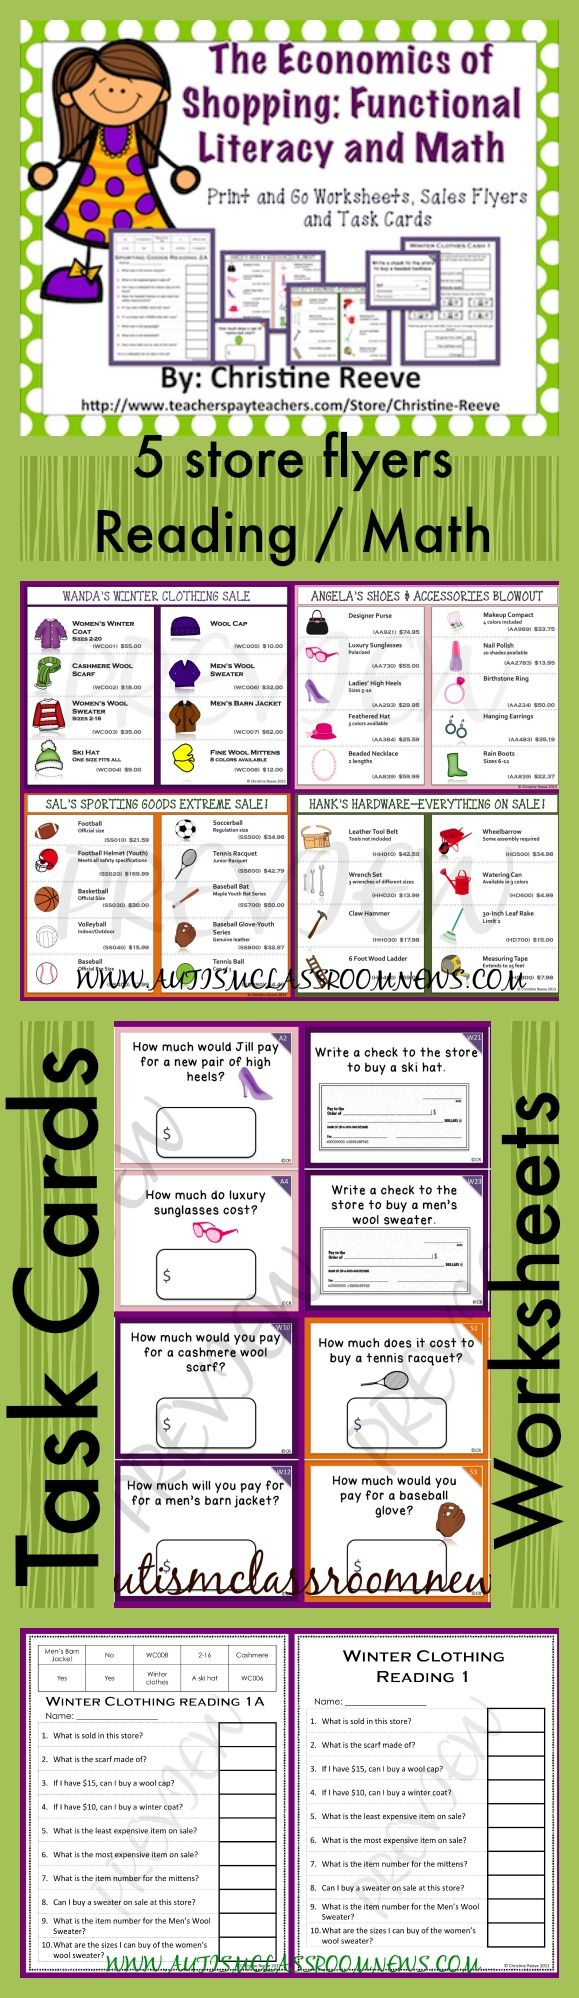 worksheet Practical Money Skills Worksheets 1000 images about books worth reading on pinterest activities this is an easy print and go set of math shopping for students working money skills in elementary school or life sk